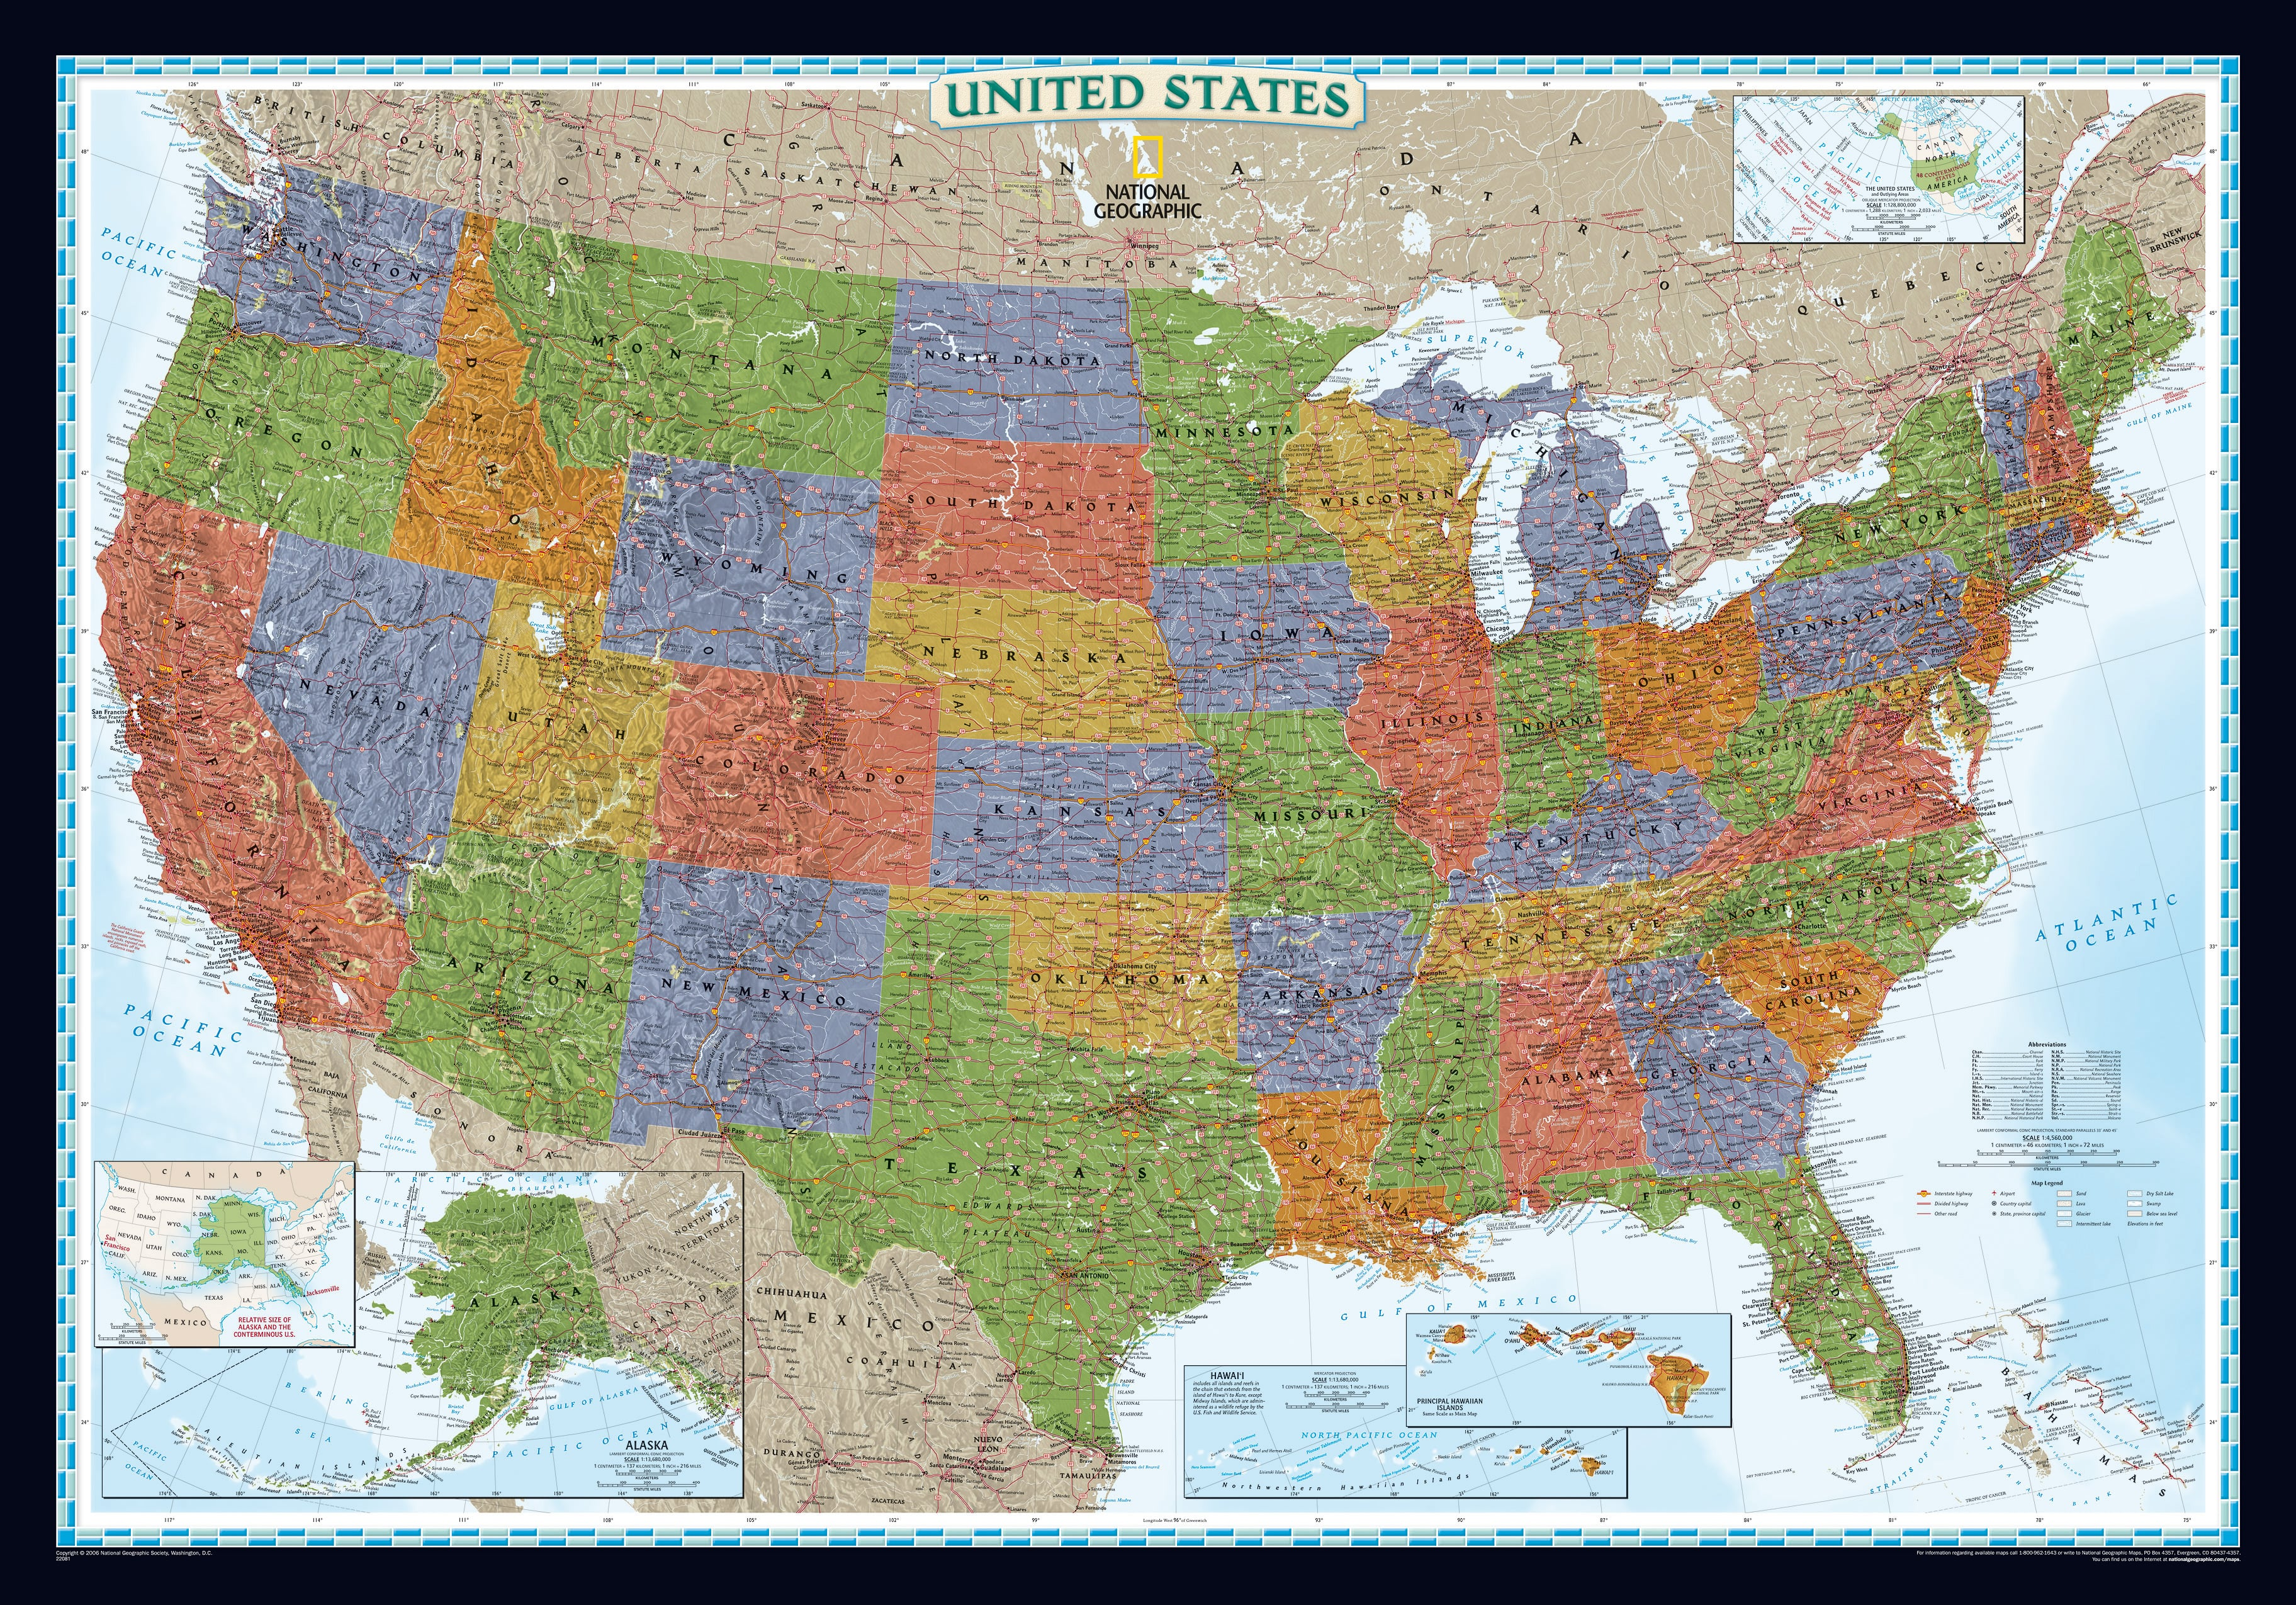 Large Laminated Us Map.Decorator Us Map Large Size Countries Regions Maps Wall Maps